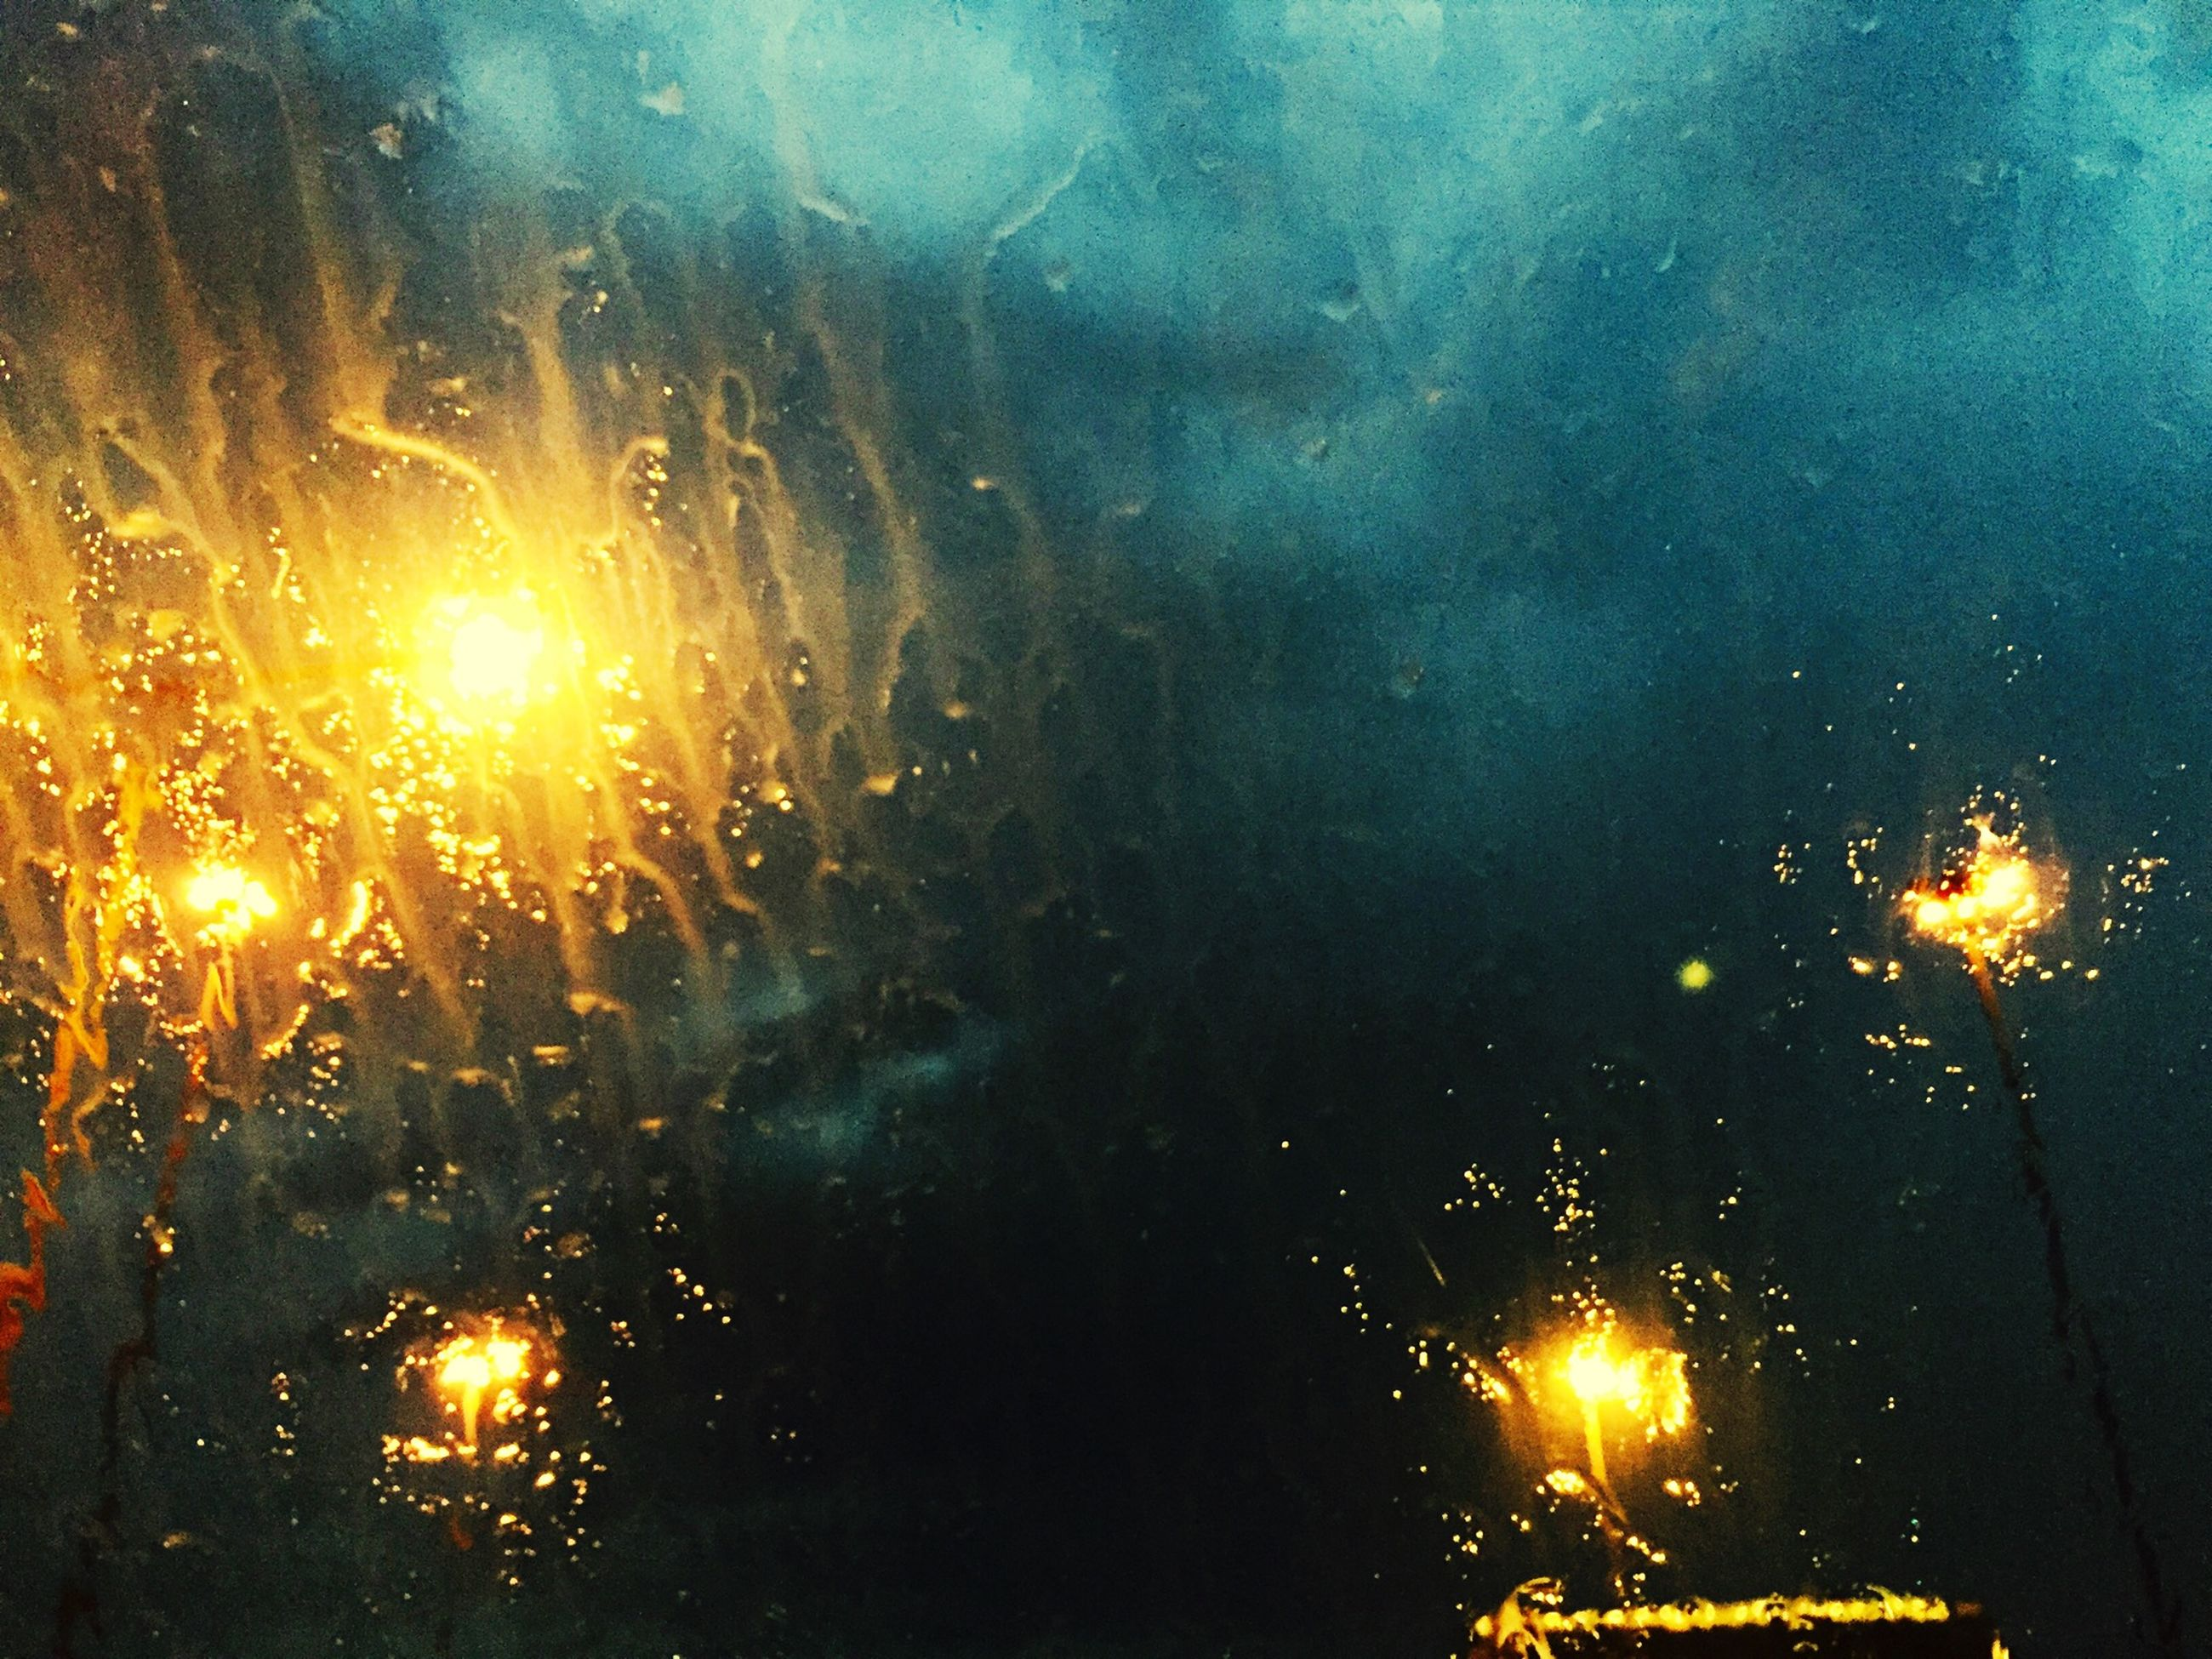 illuminated, night, water, wet, glowing, sky, rain, window, glass - material, transparent, full frame, weather, light - natural phenomenon, no people, backgrounds, drop, lighting equipment, outdoors, dark, reflection